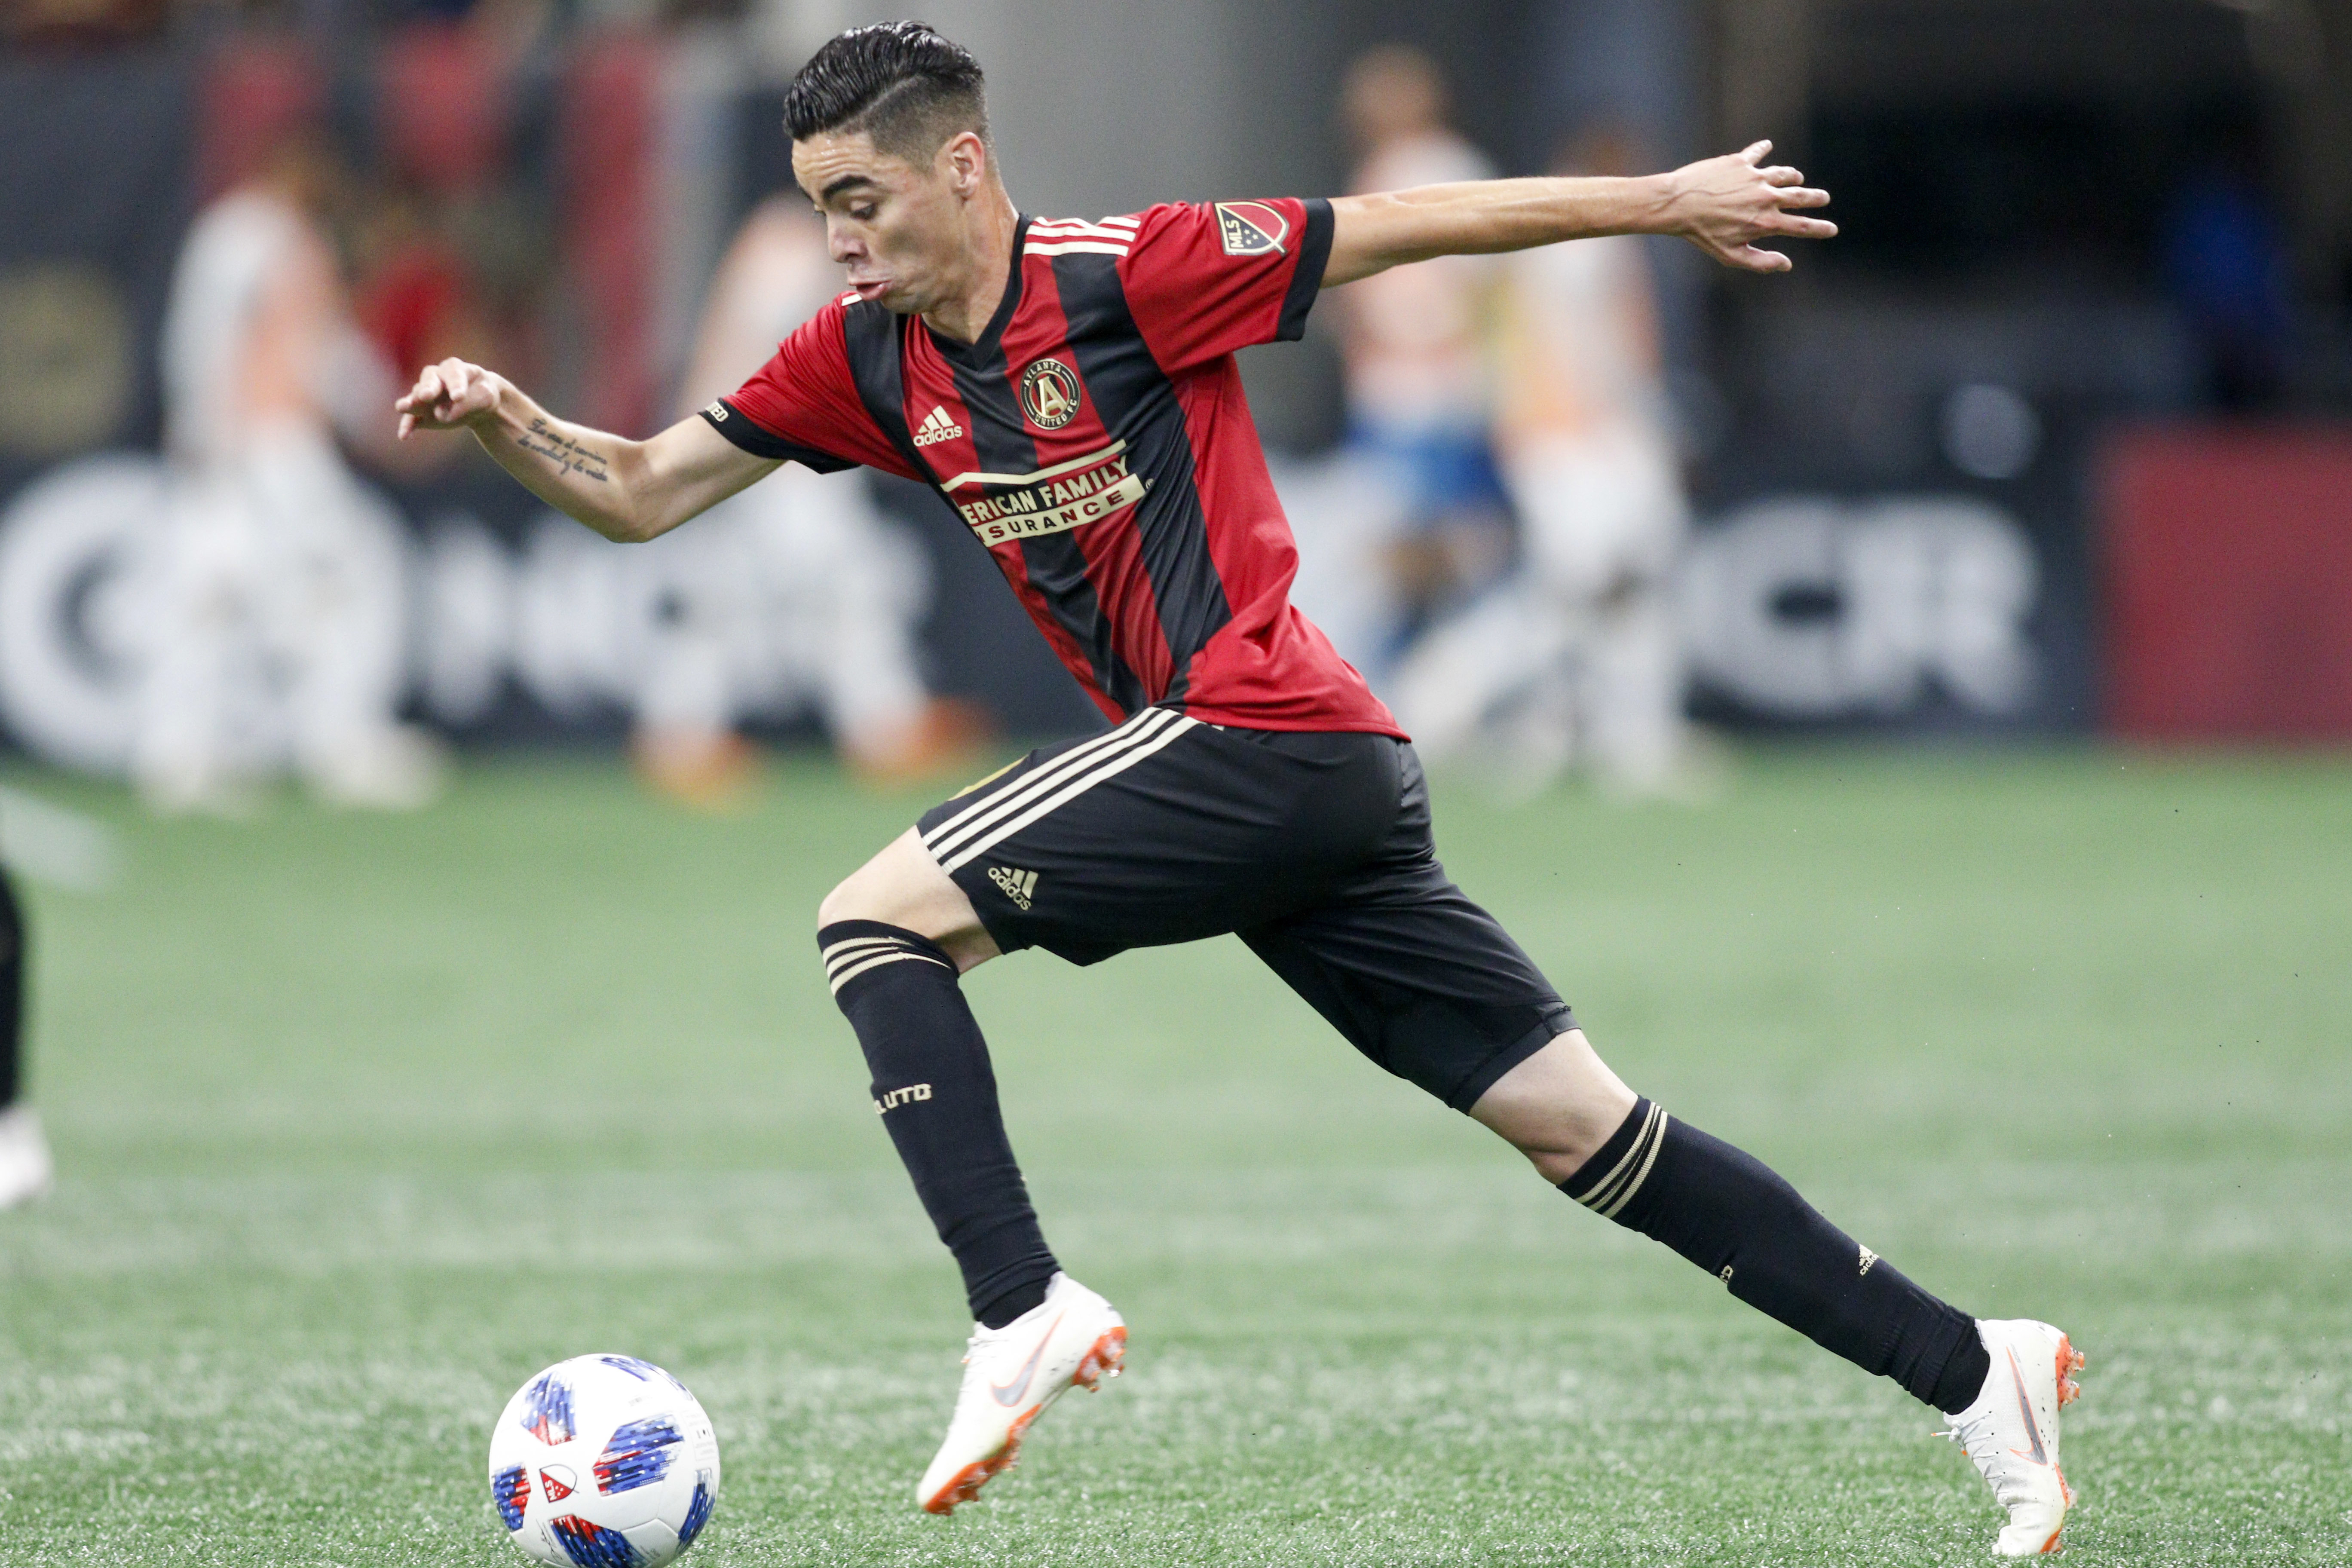 High-profile moves _ and near moves _ mark a shift in MLS